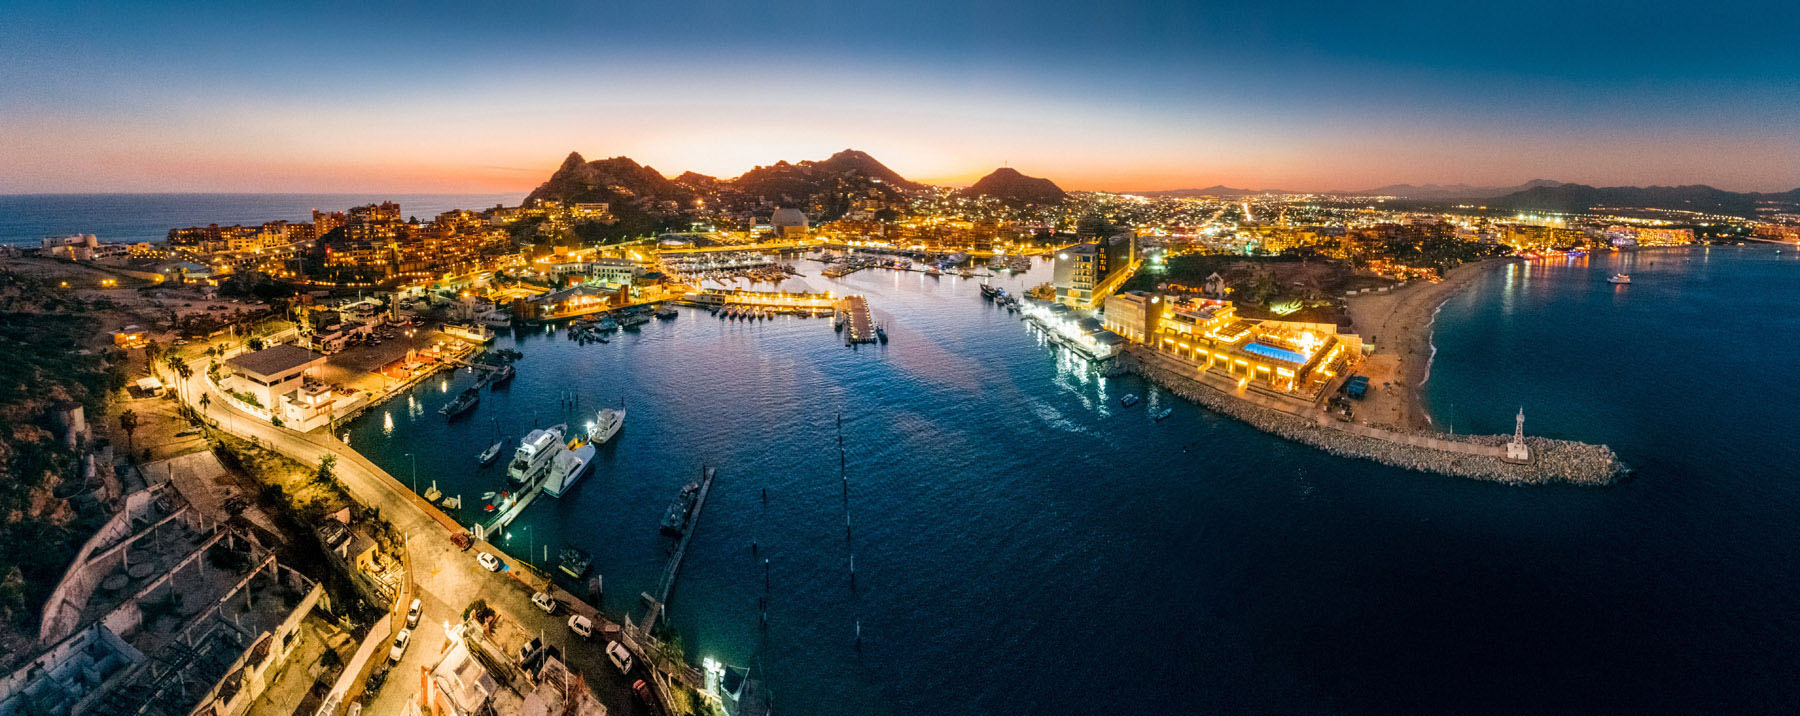 Cabo San Lucas is one of Mexico's best cities for enjoying nightlife.